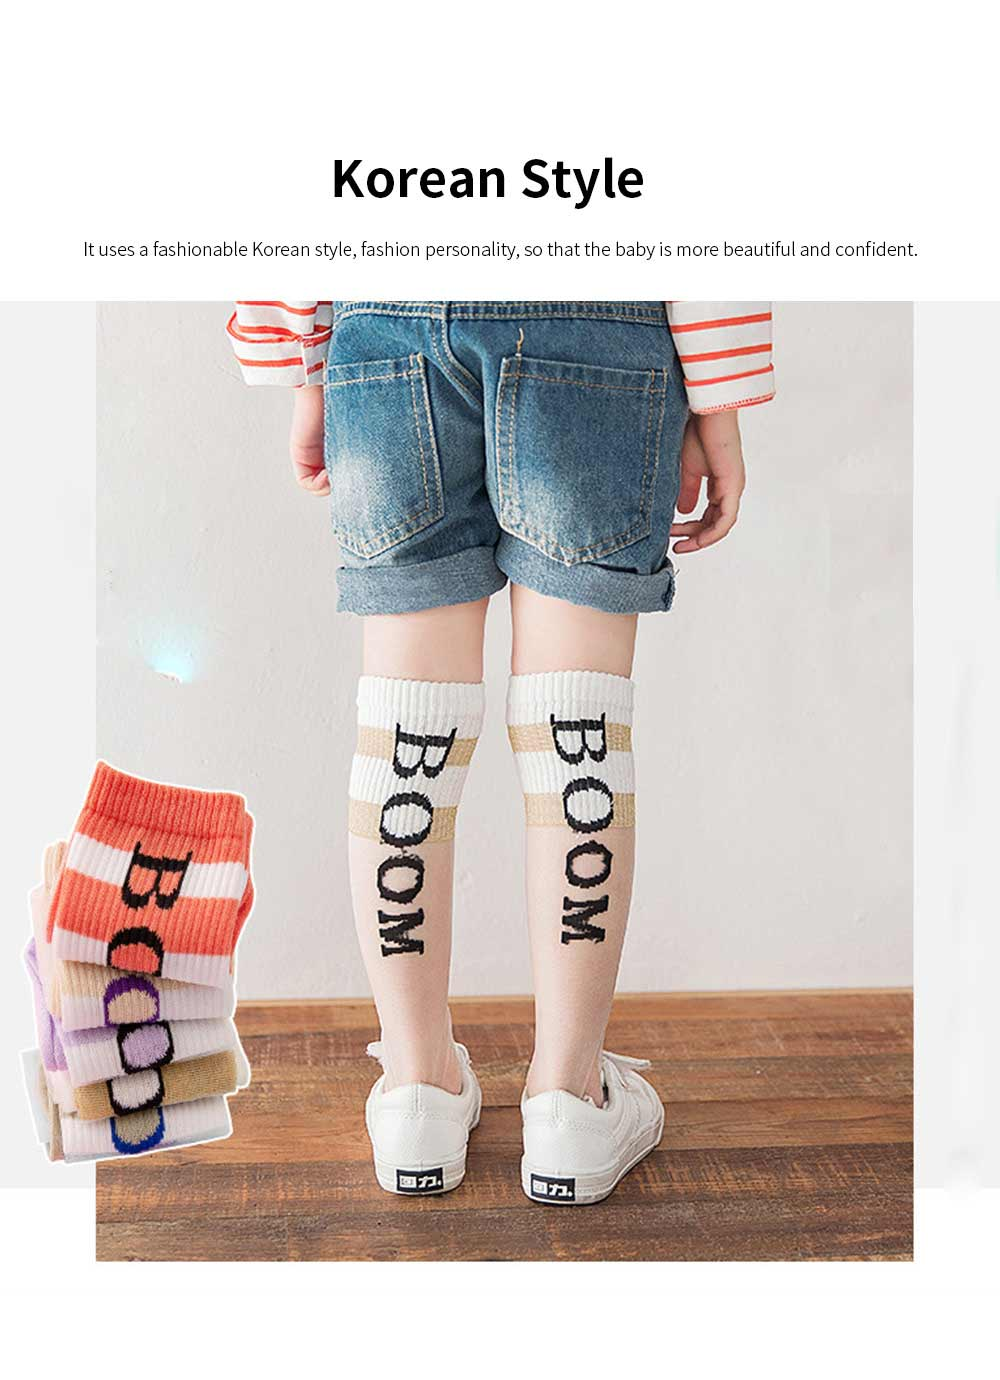 Children's Trendy Medium Length Socks Korean Style Thin Glass Silk Alphabet Printed Socks For Summer 5